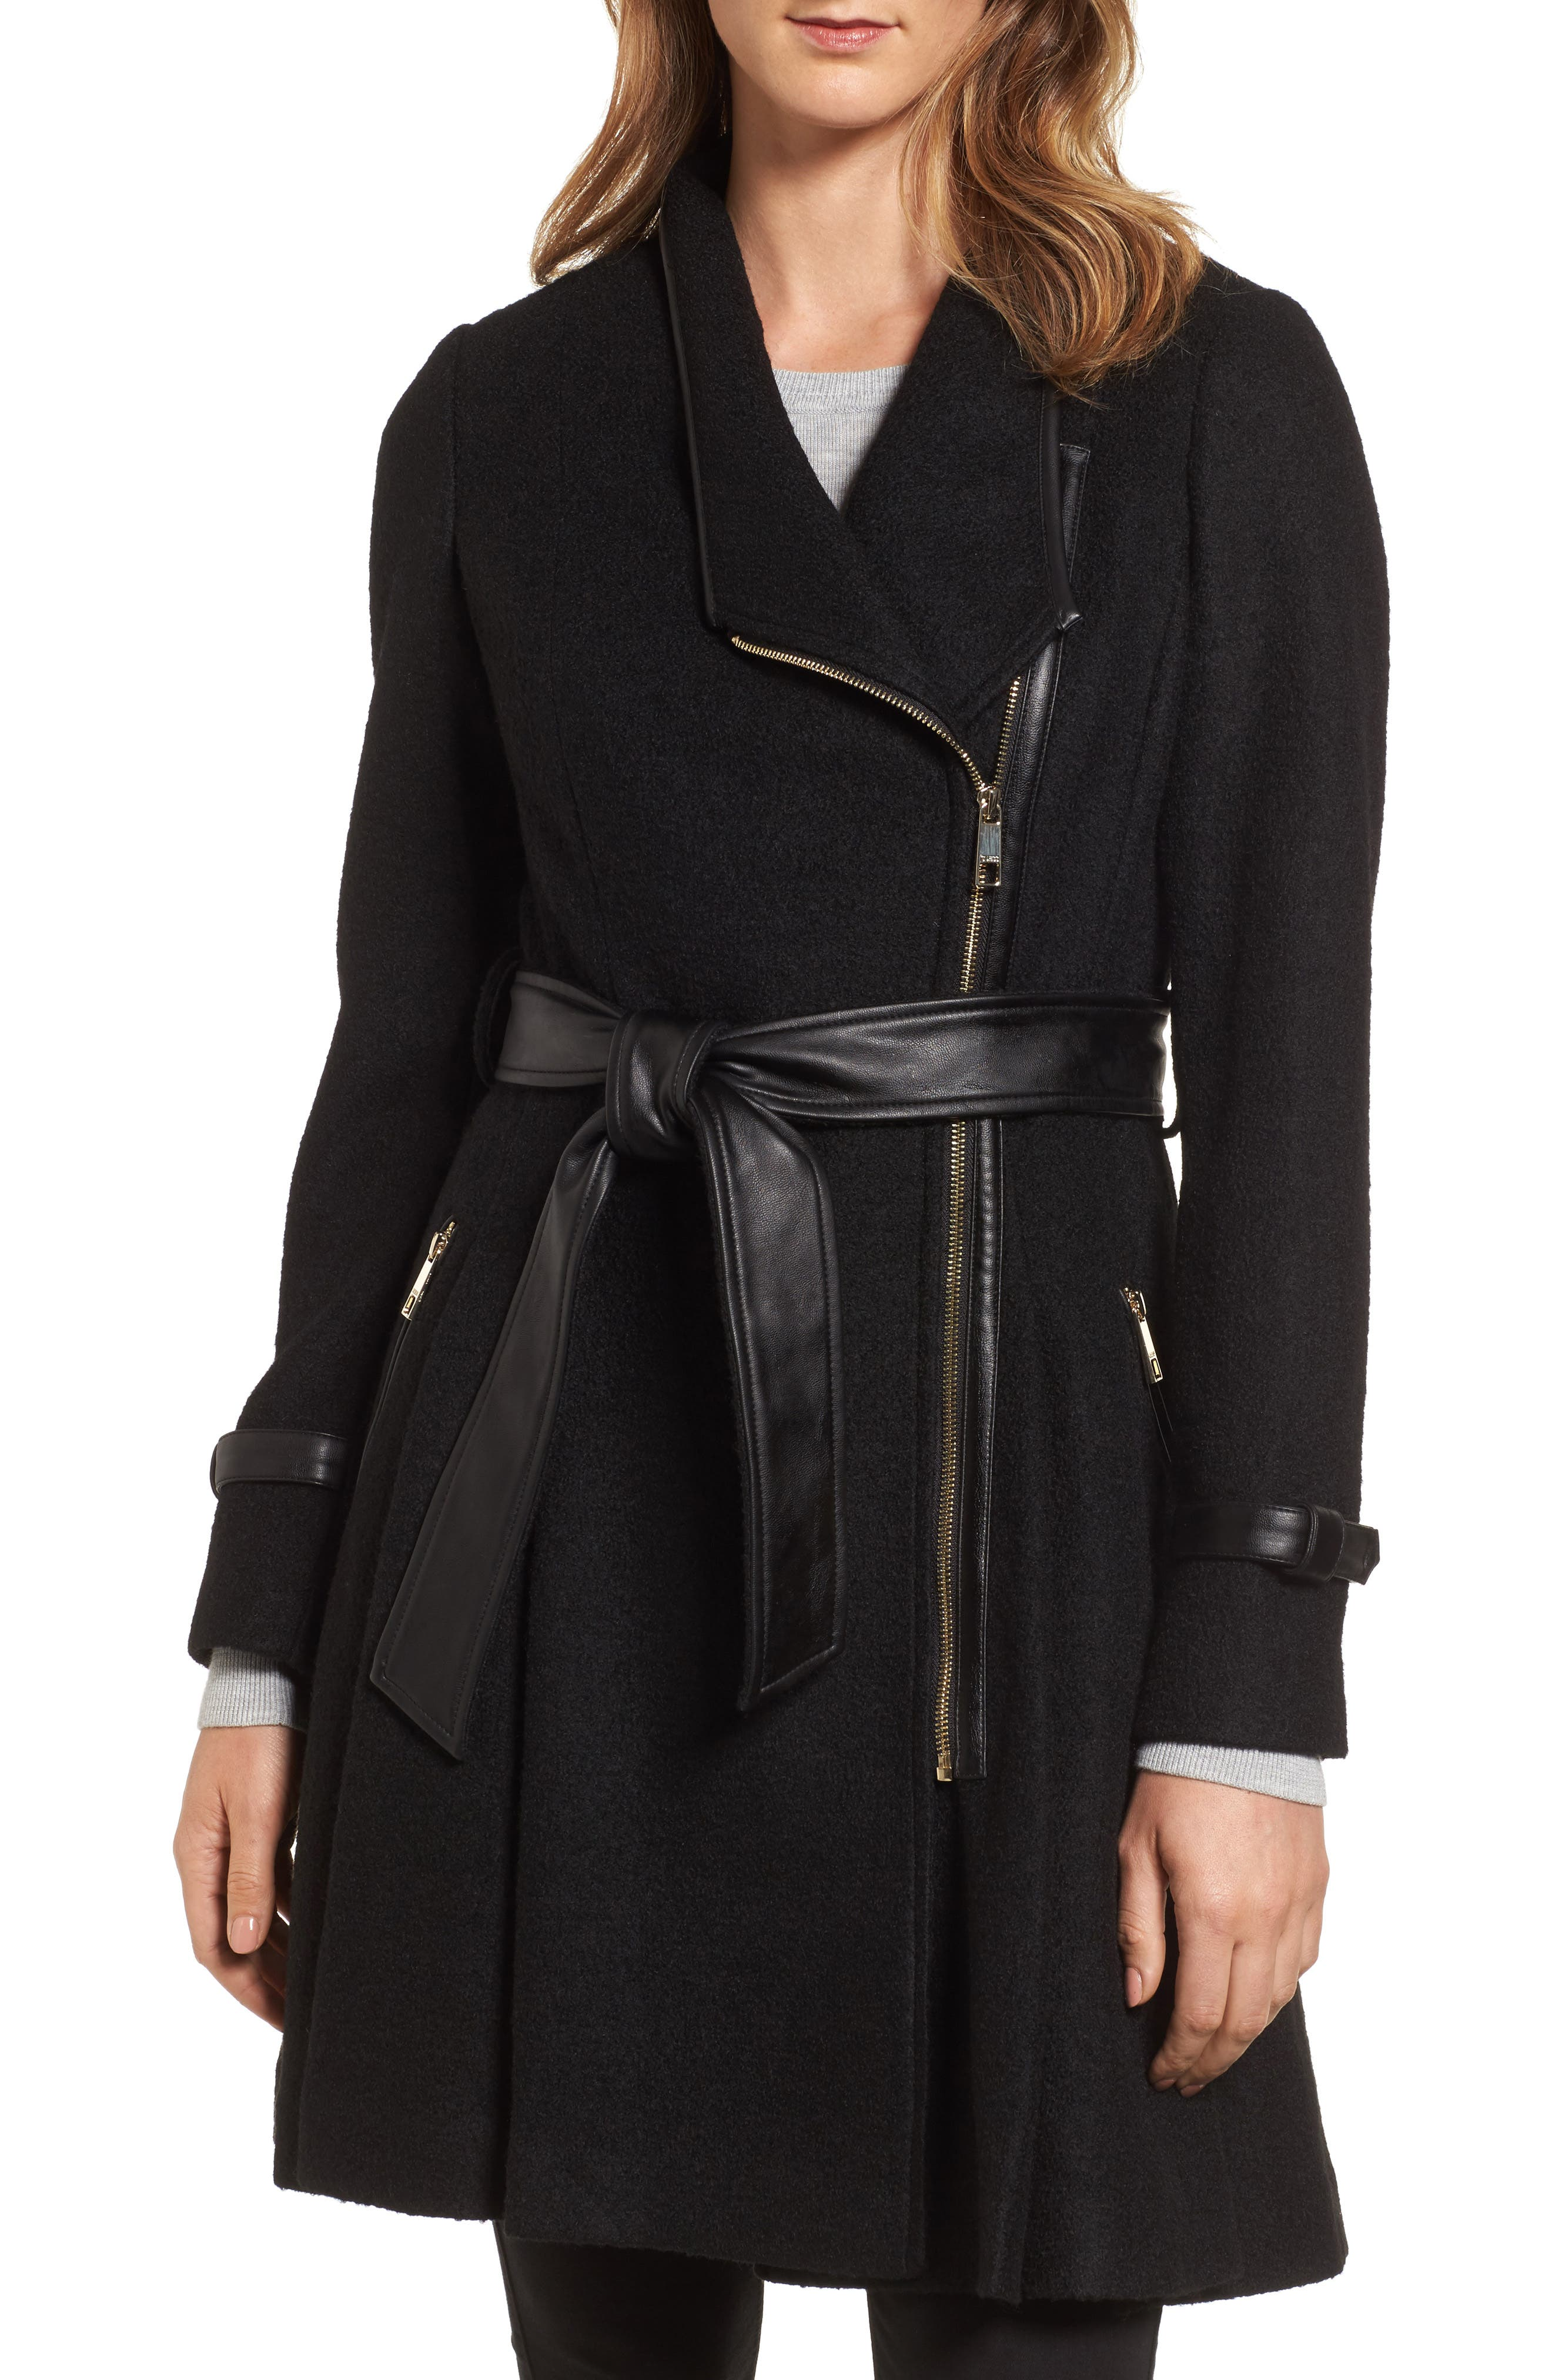 Alternate Image 1 Selected - GUESS Belted Boiled Wool Blend Coat